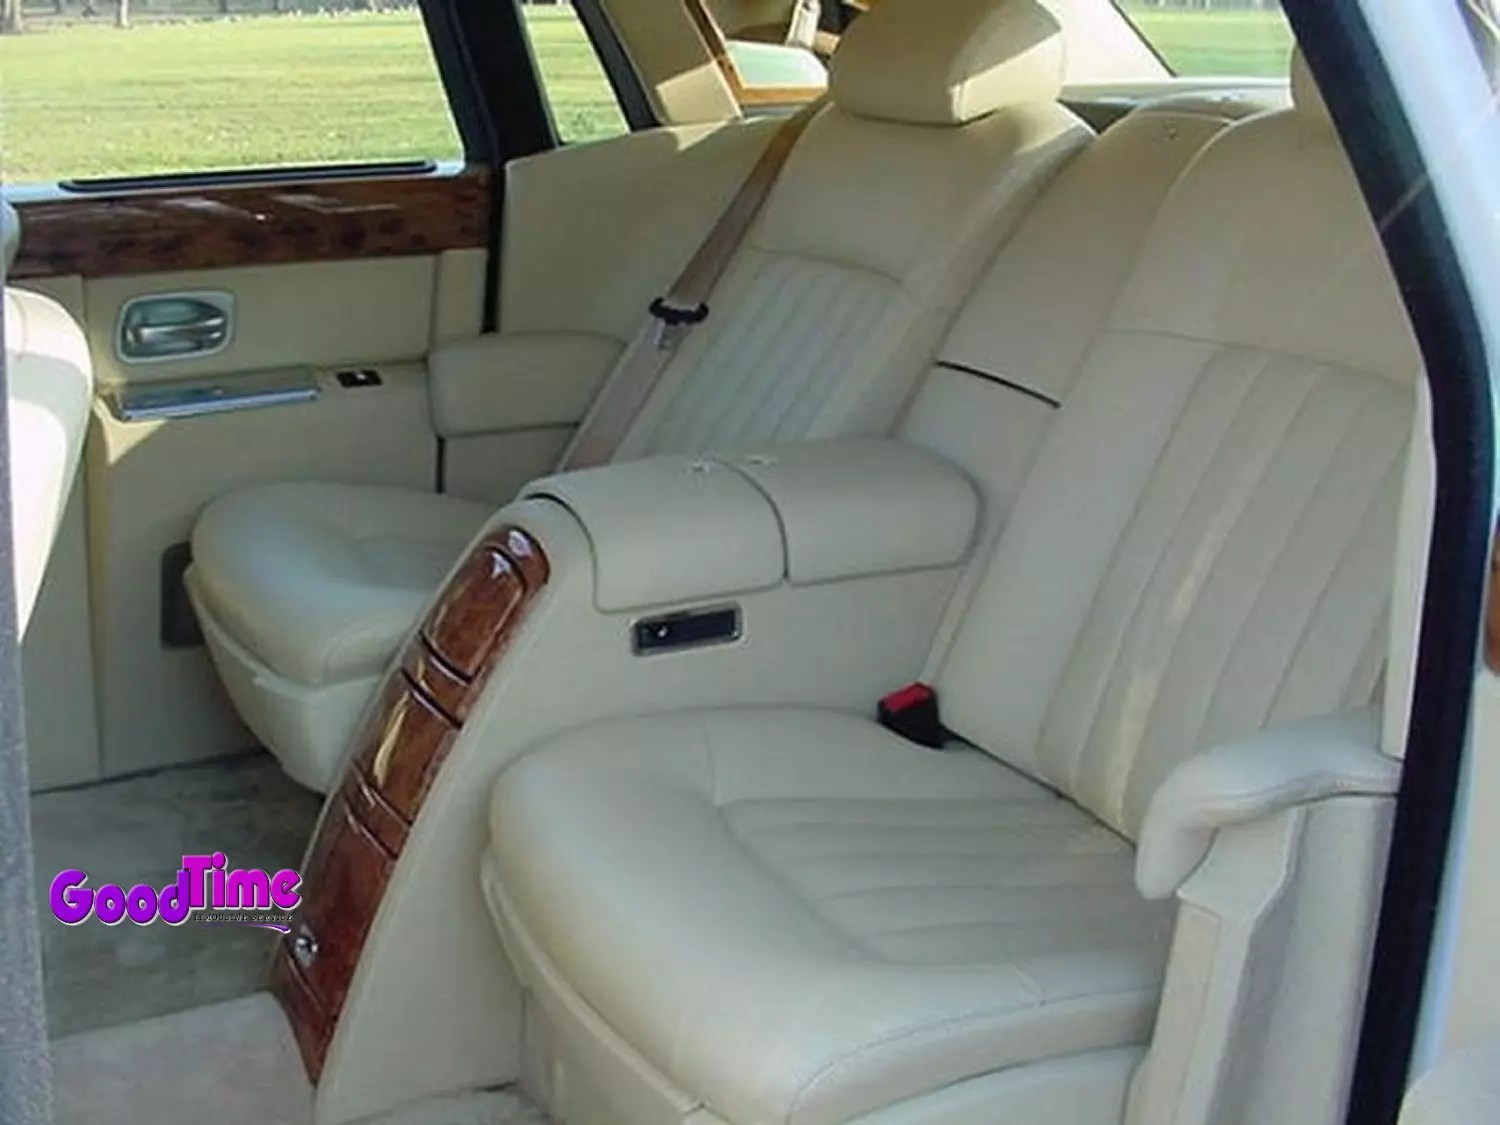 Rolls Royce Phantom White Limo Int 1 2 LIMO RENTAL FLEET